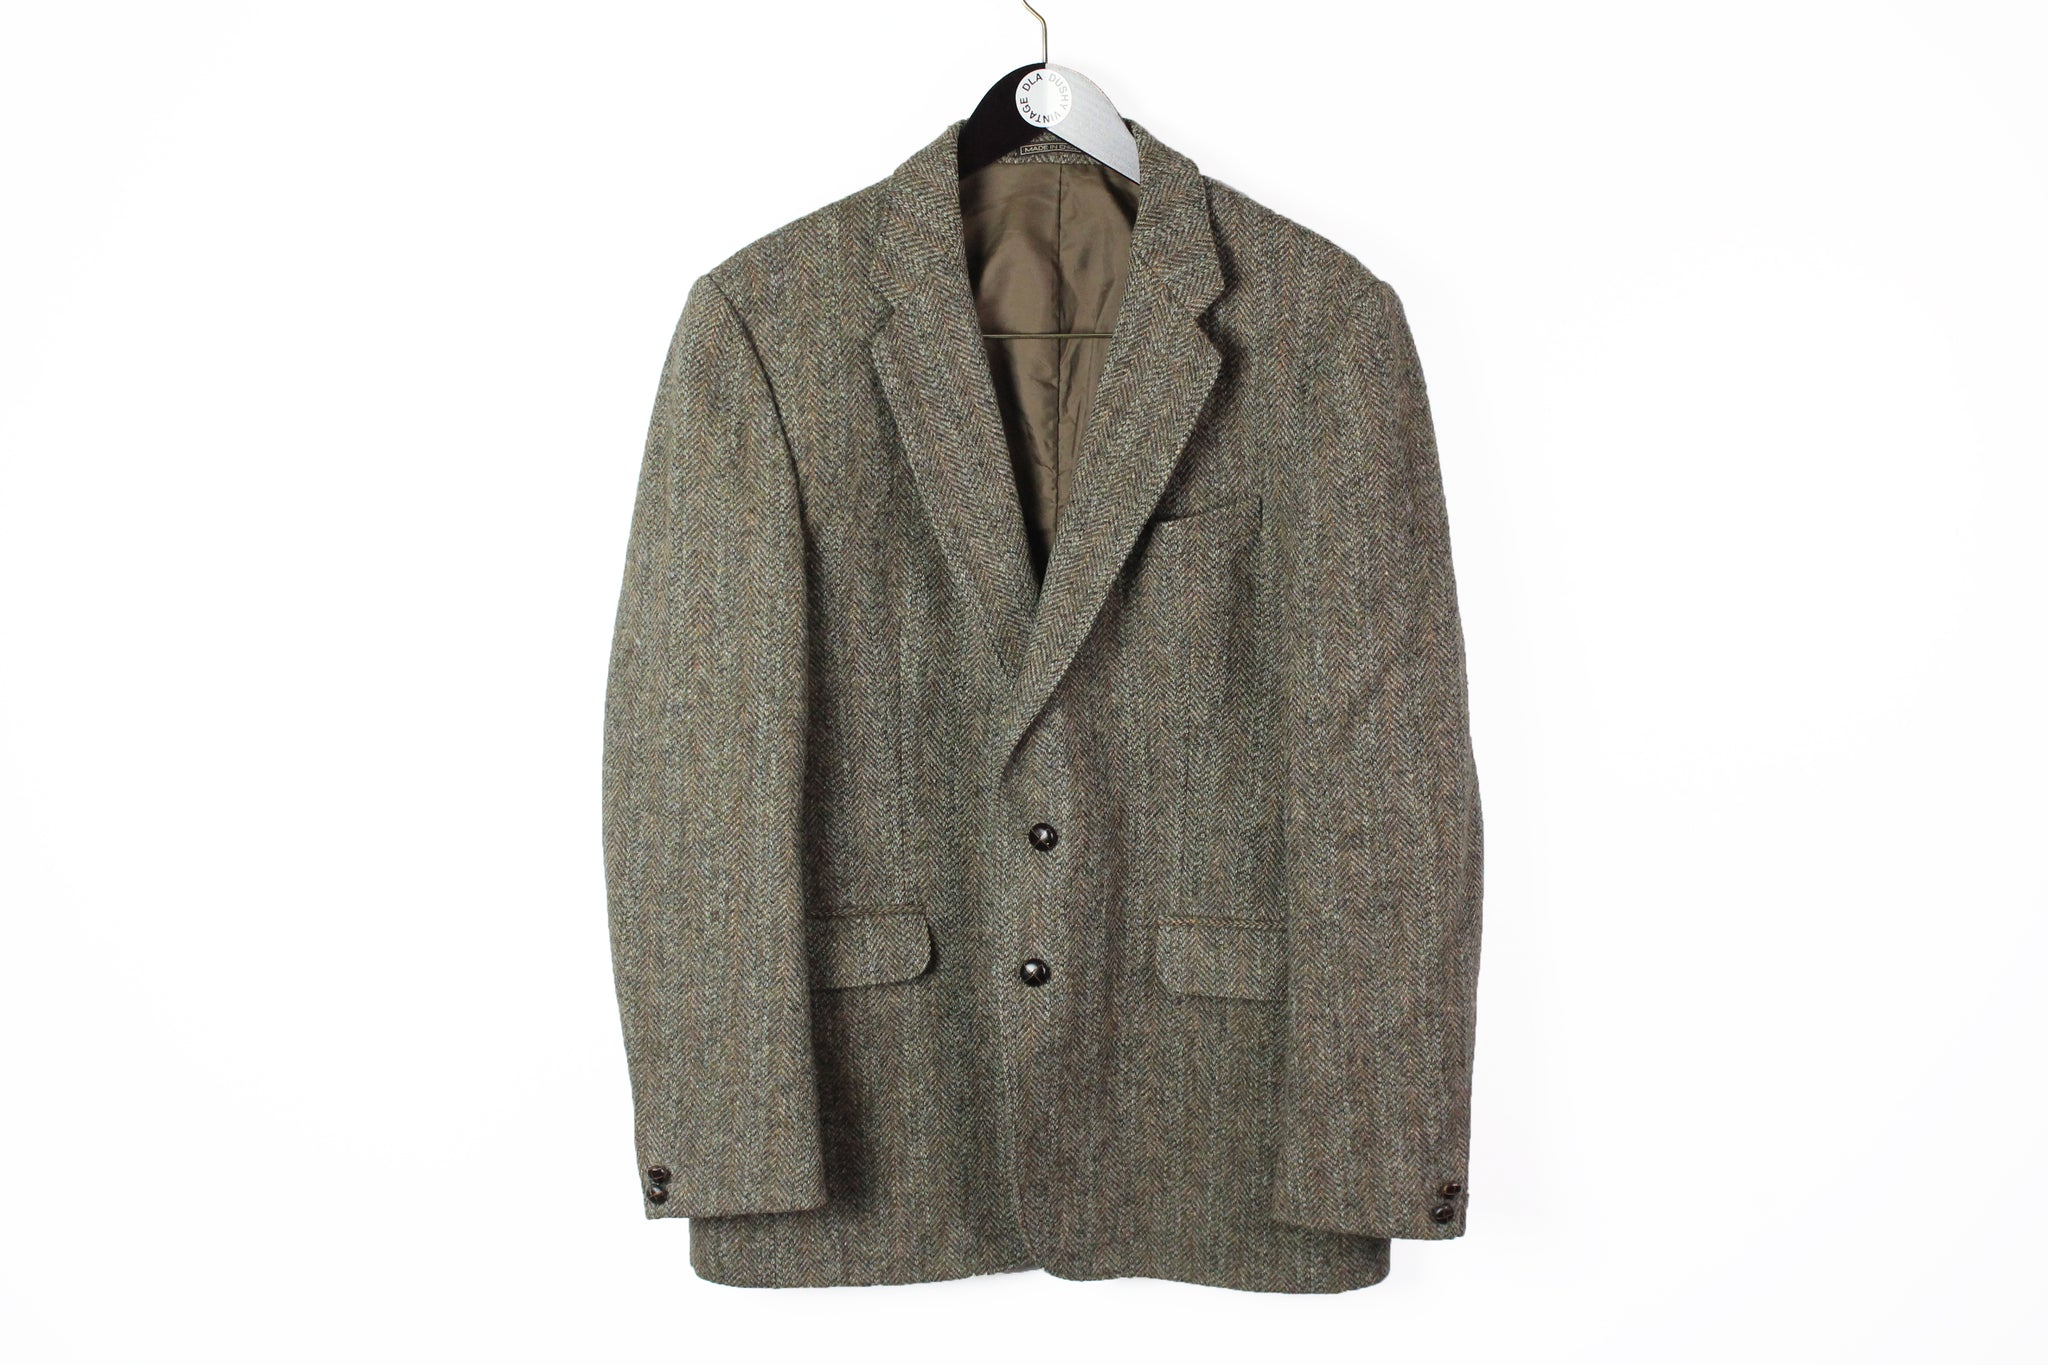 Vintage Harris Tweed Blazer XLarge brown wool 90s classic UK style jacket